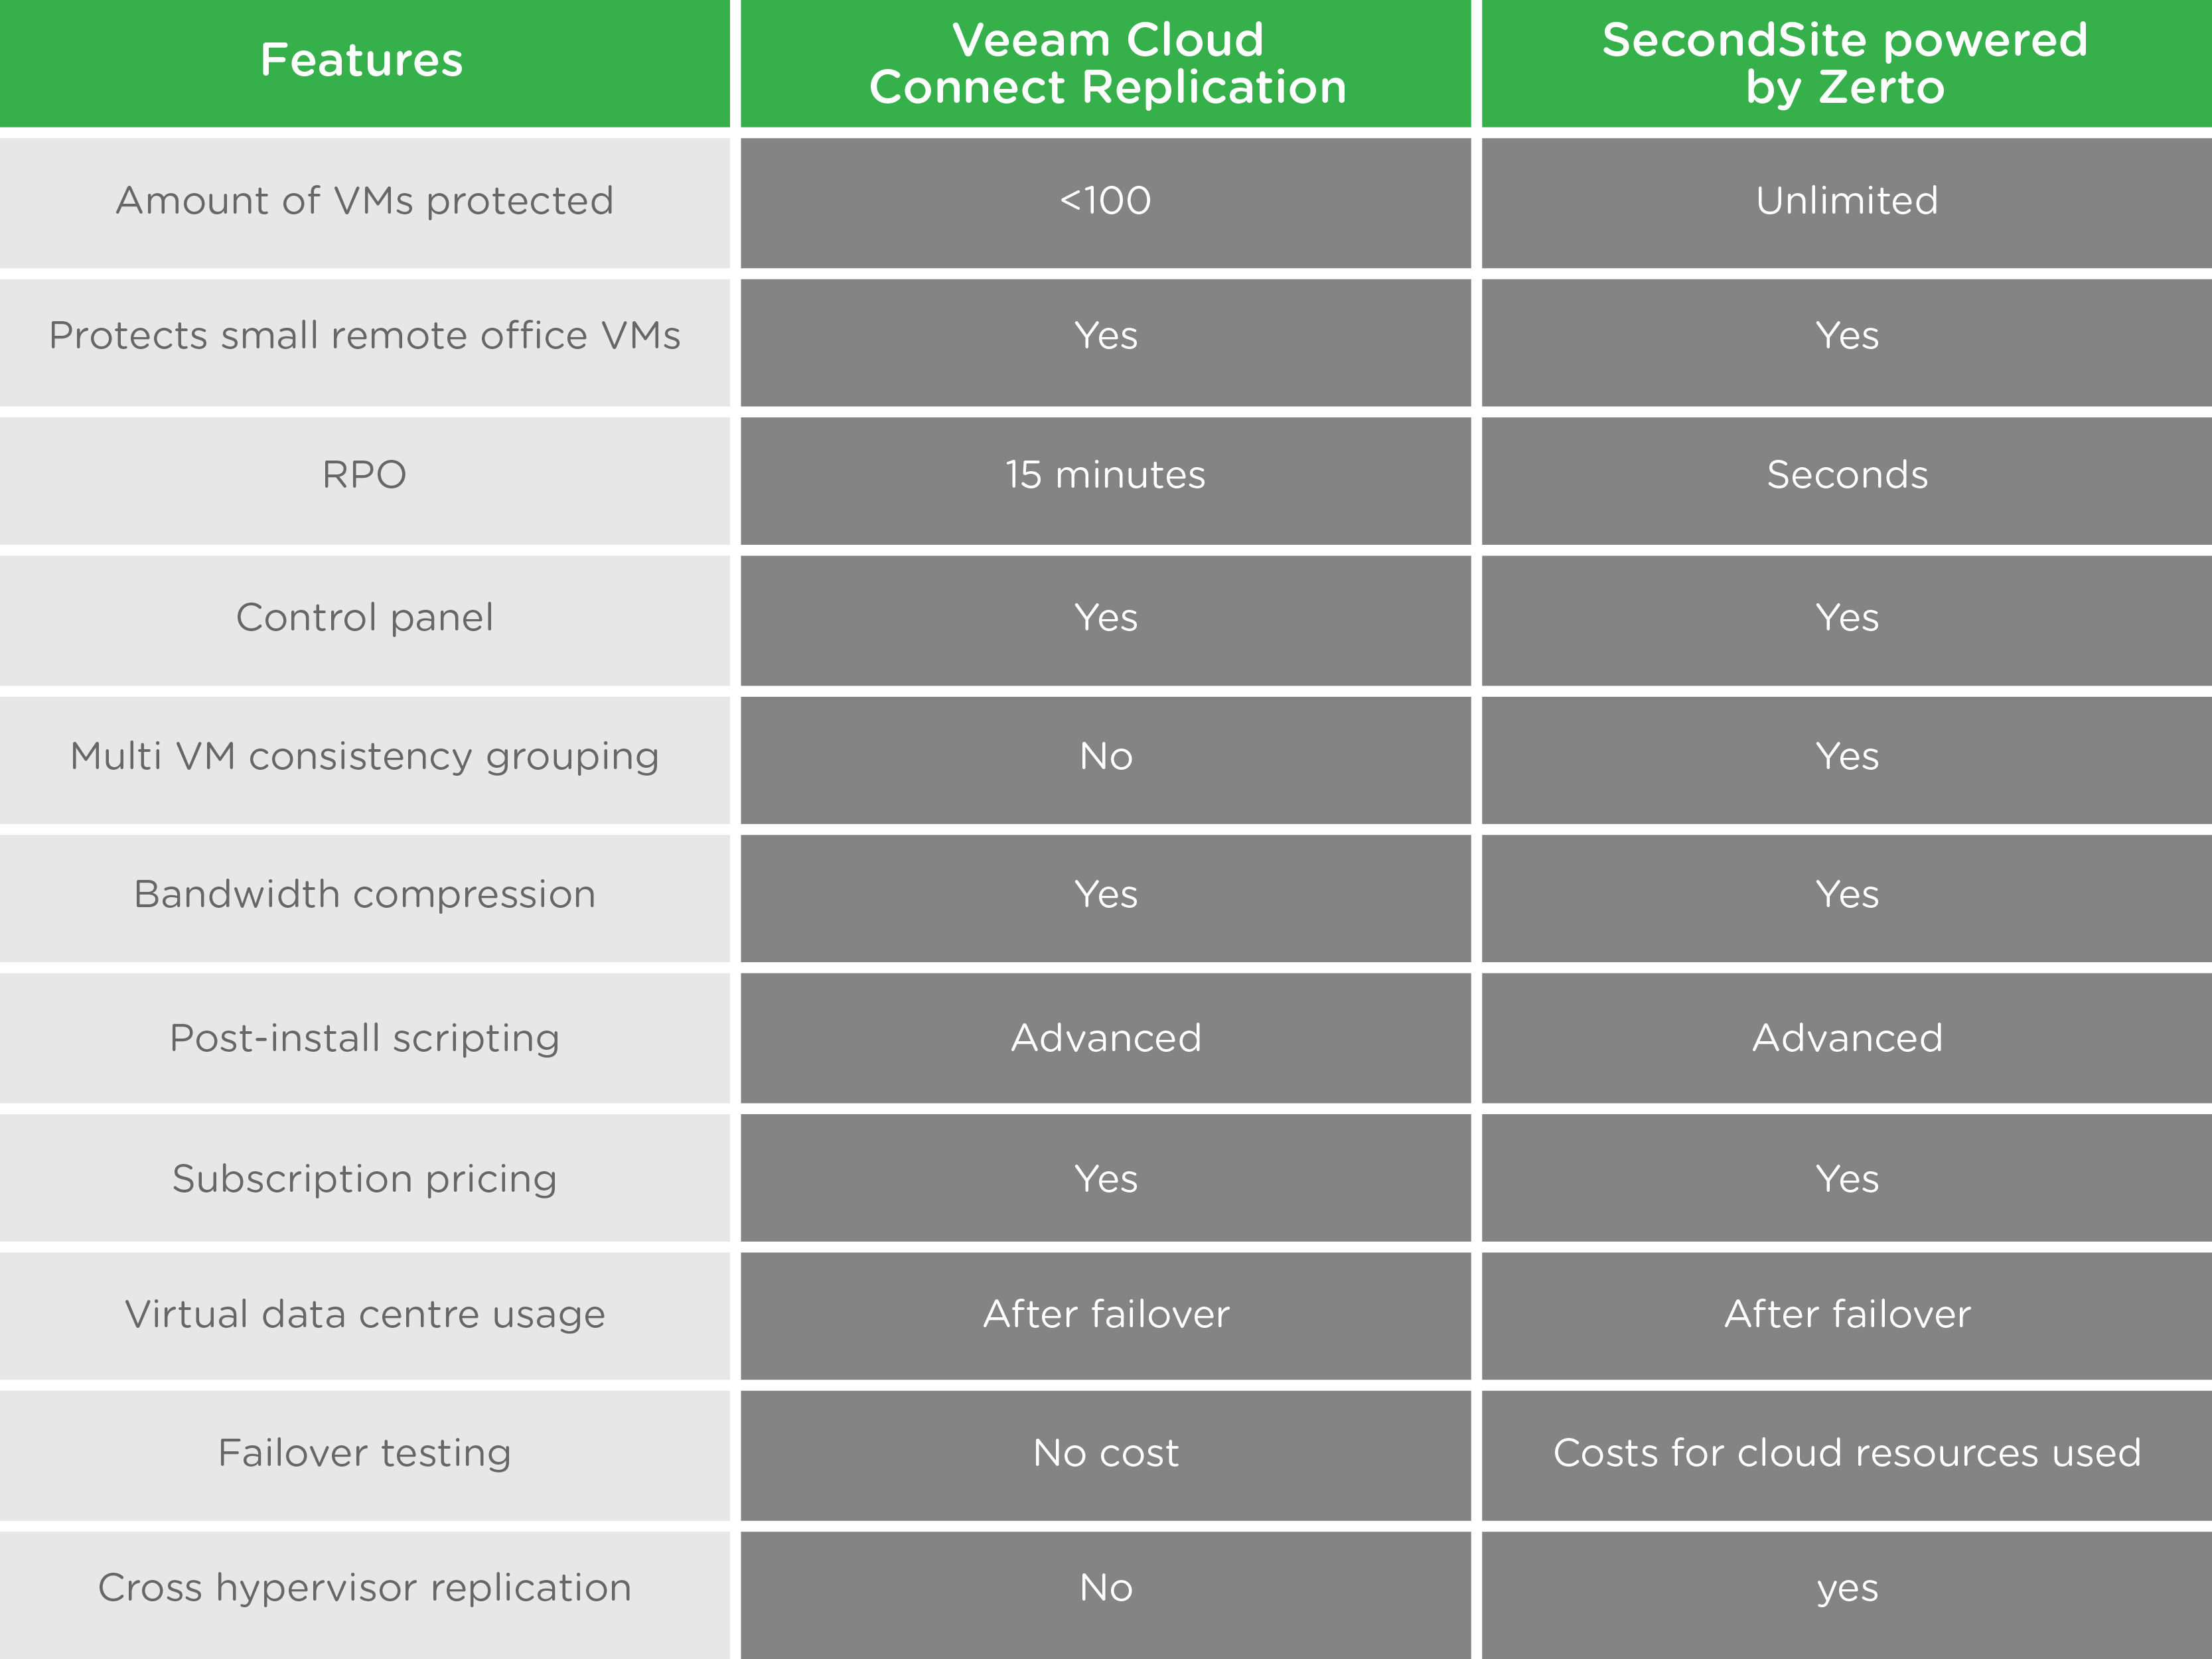 disaster recovery, DRaaS, Zerto, Veeam